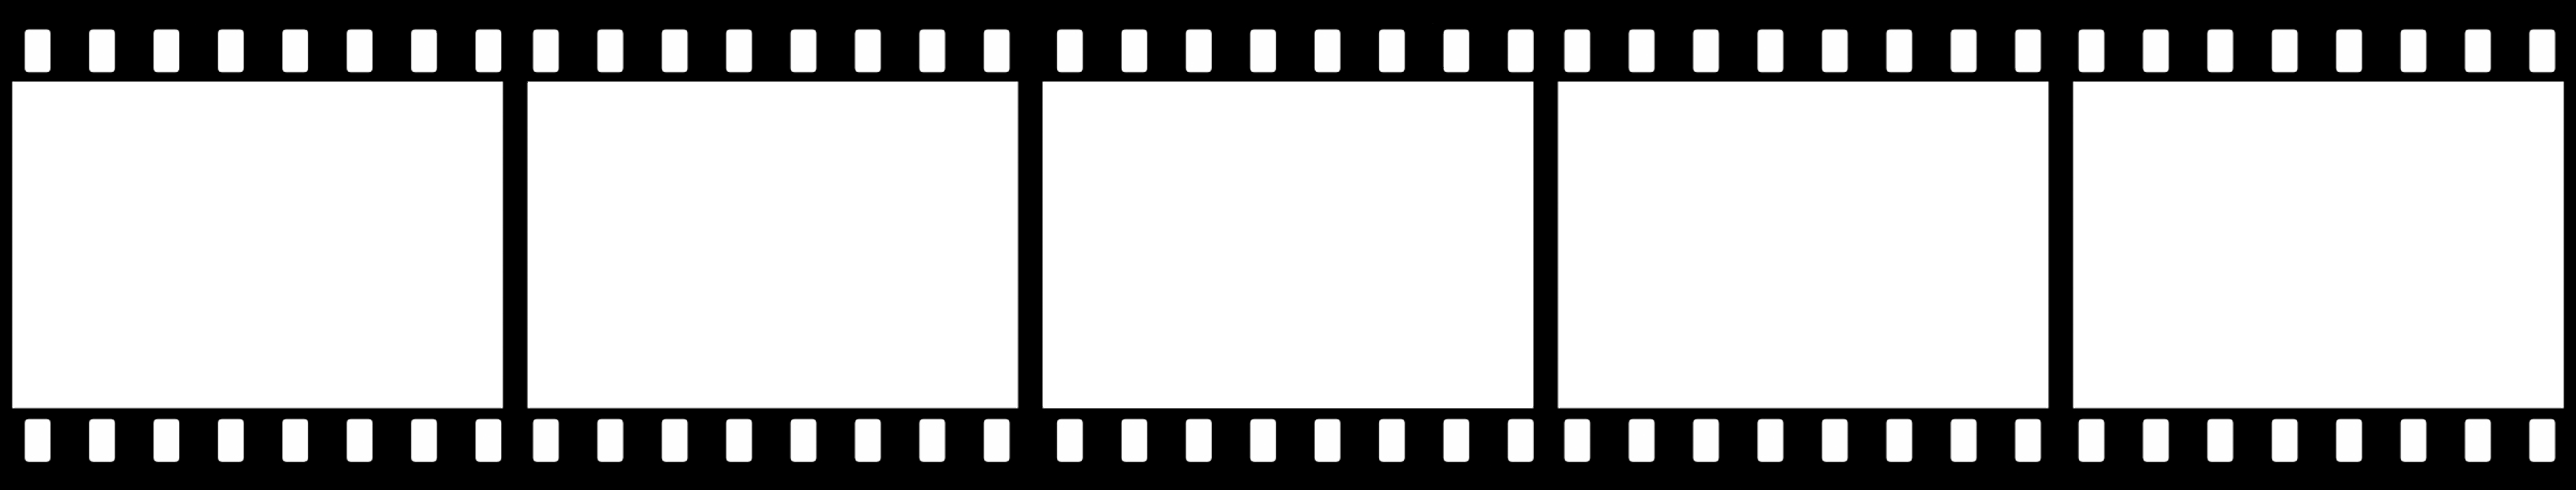 5672x1080 Filmstrip Vectors, Photos And Psd Files Free Download